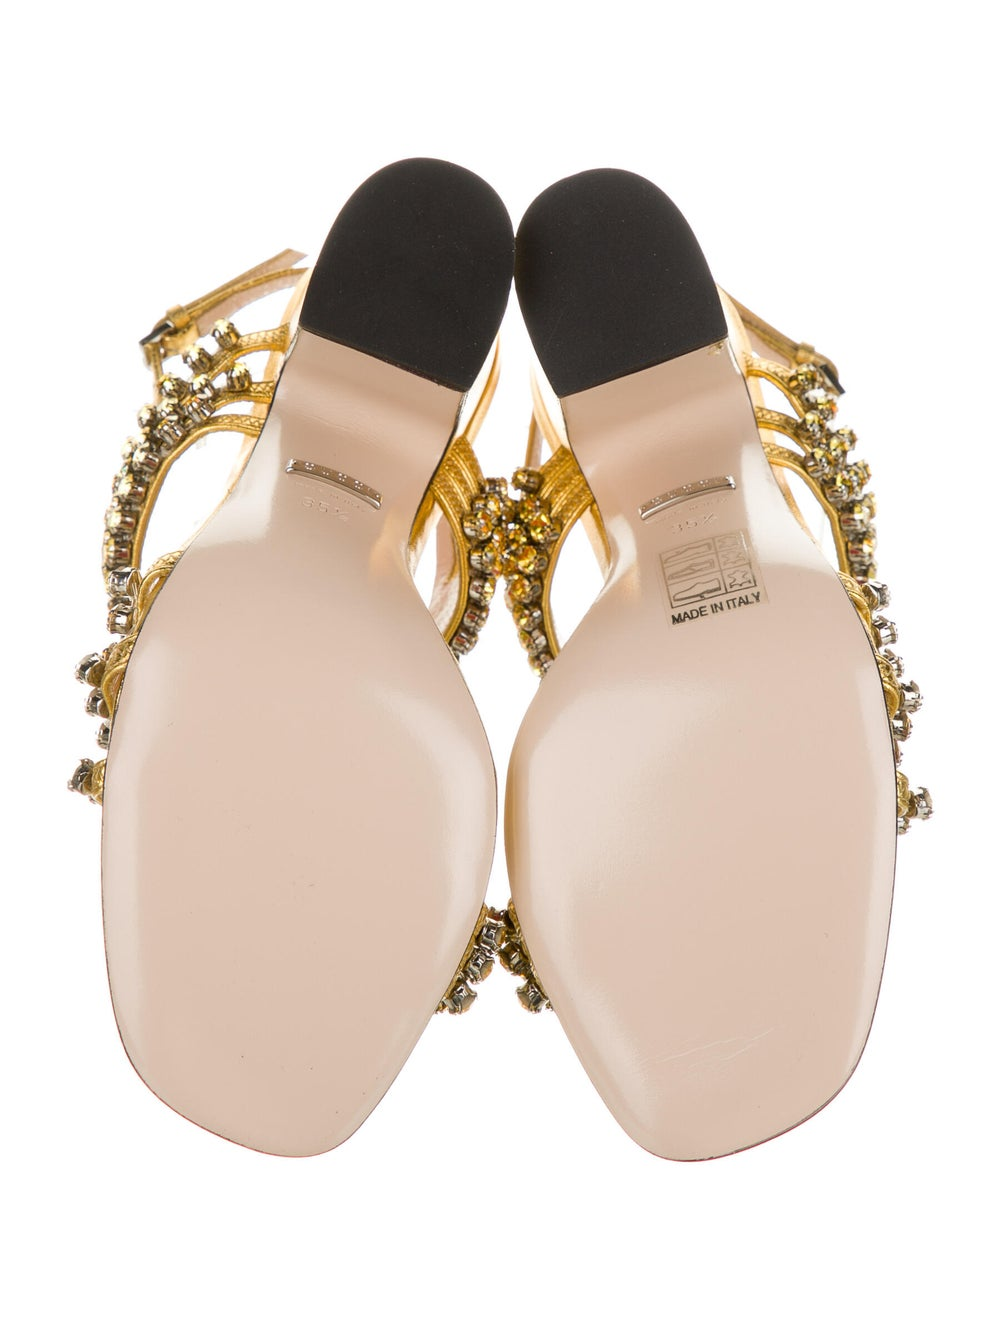 Gucci Leather Crystal Embellishments Sandals Gold - image 5